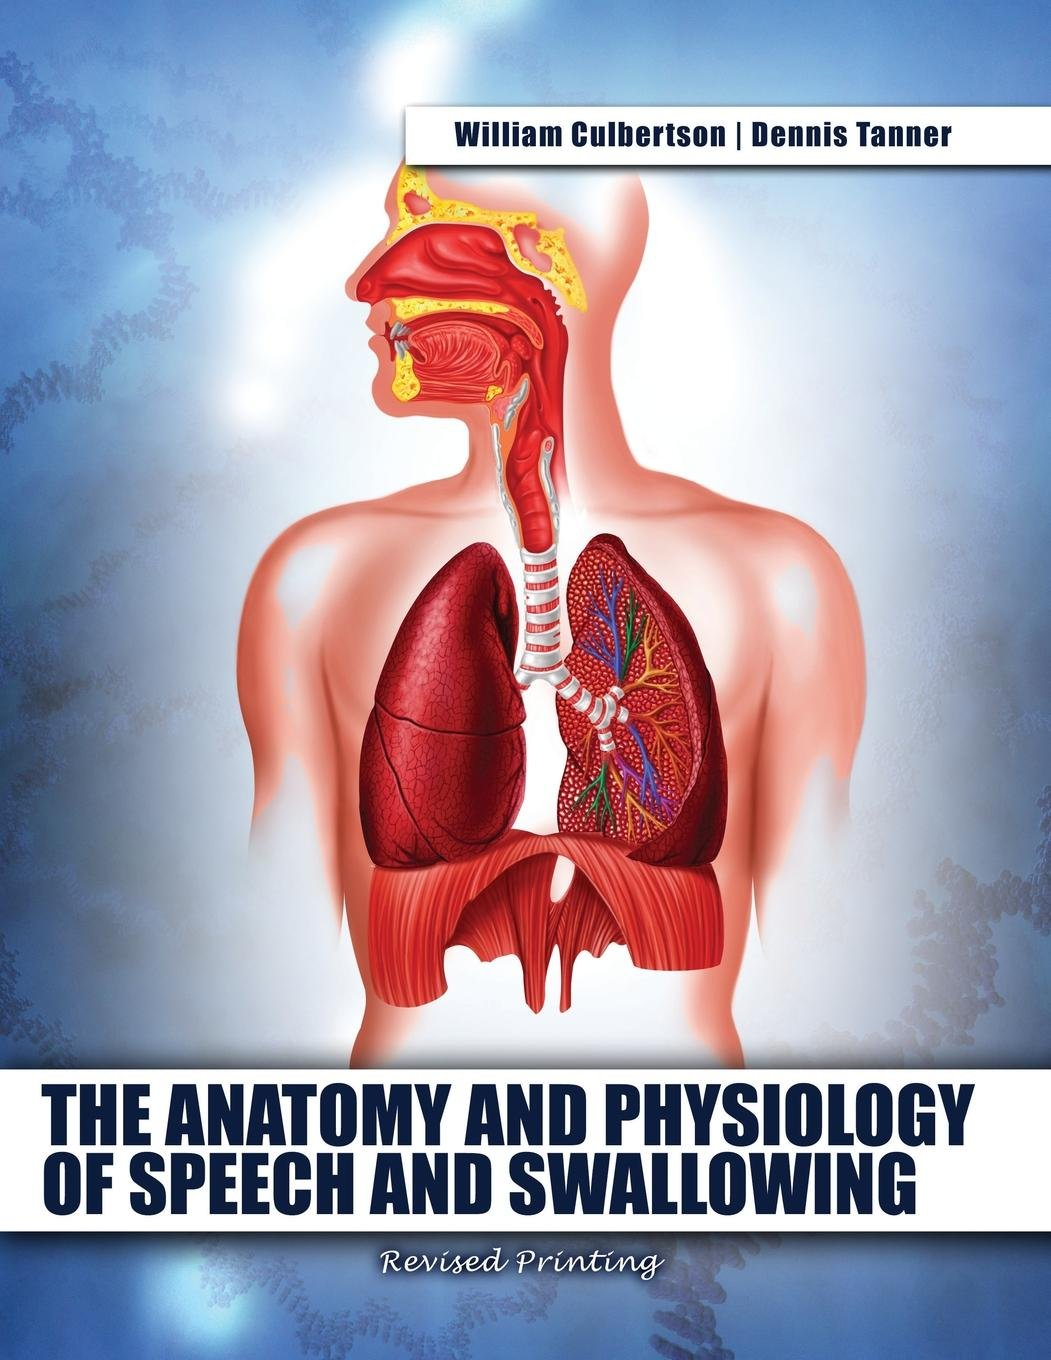 Anatomy and Physiology of Speech and Swallowing: Amazon.co.uk ...